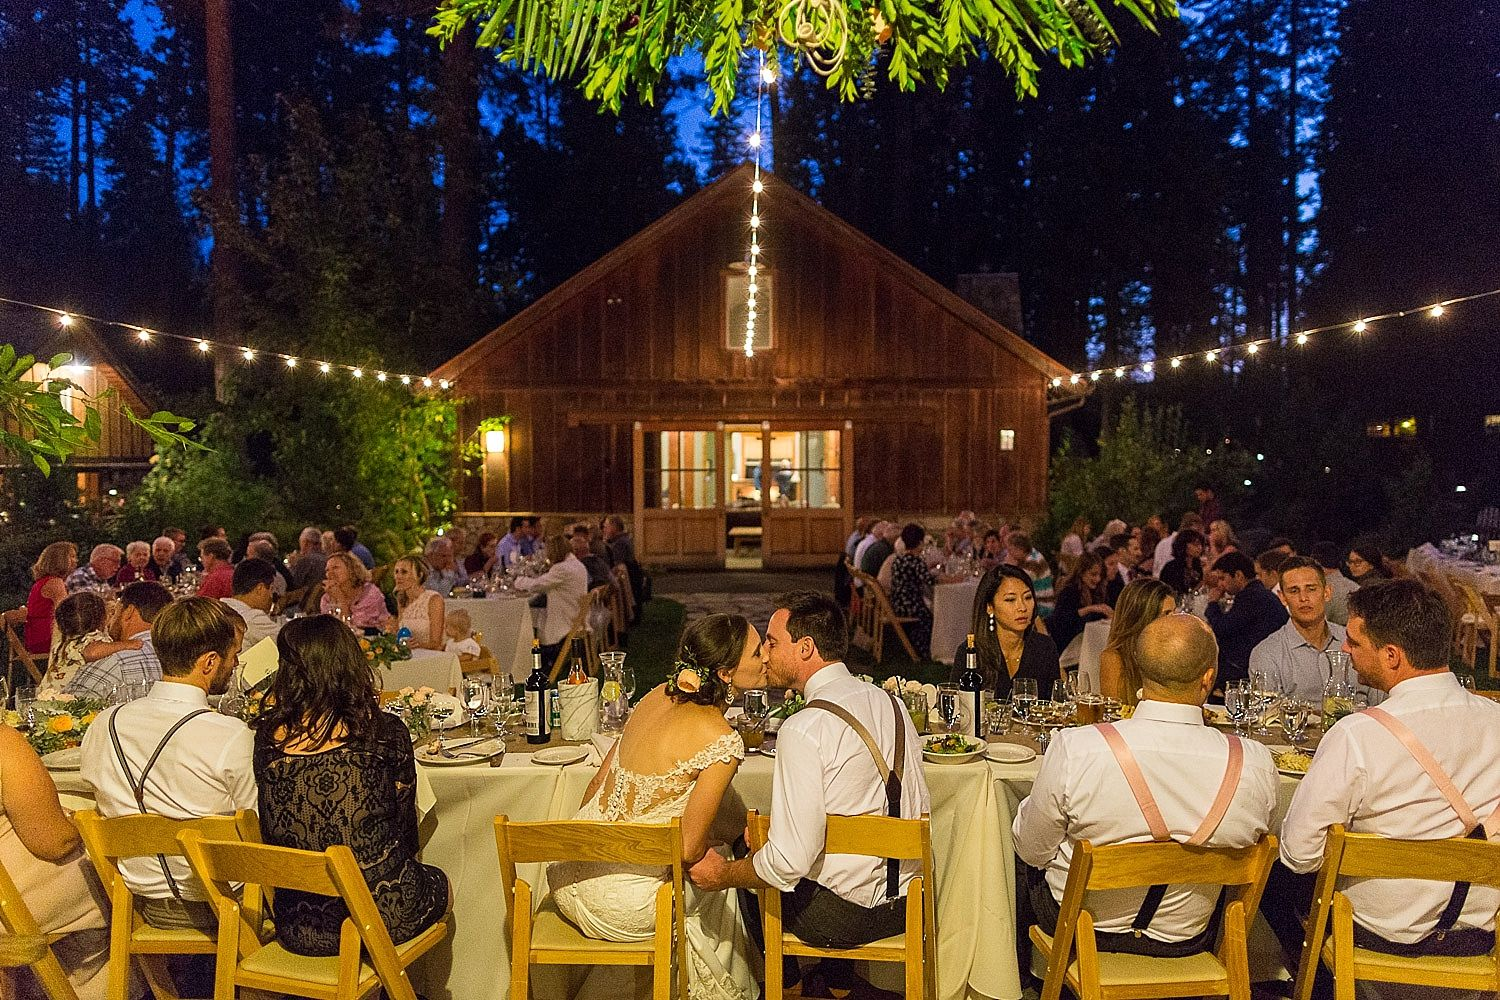 Playful Yosemite Wedding At Evergreen Lodge Yosemite Wedding